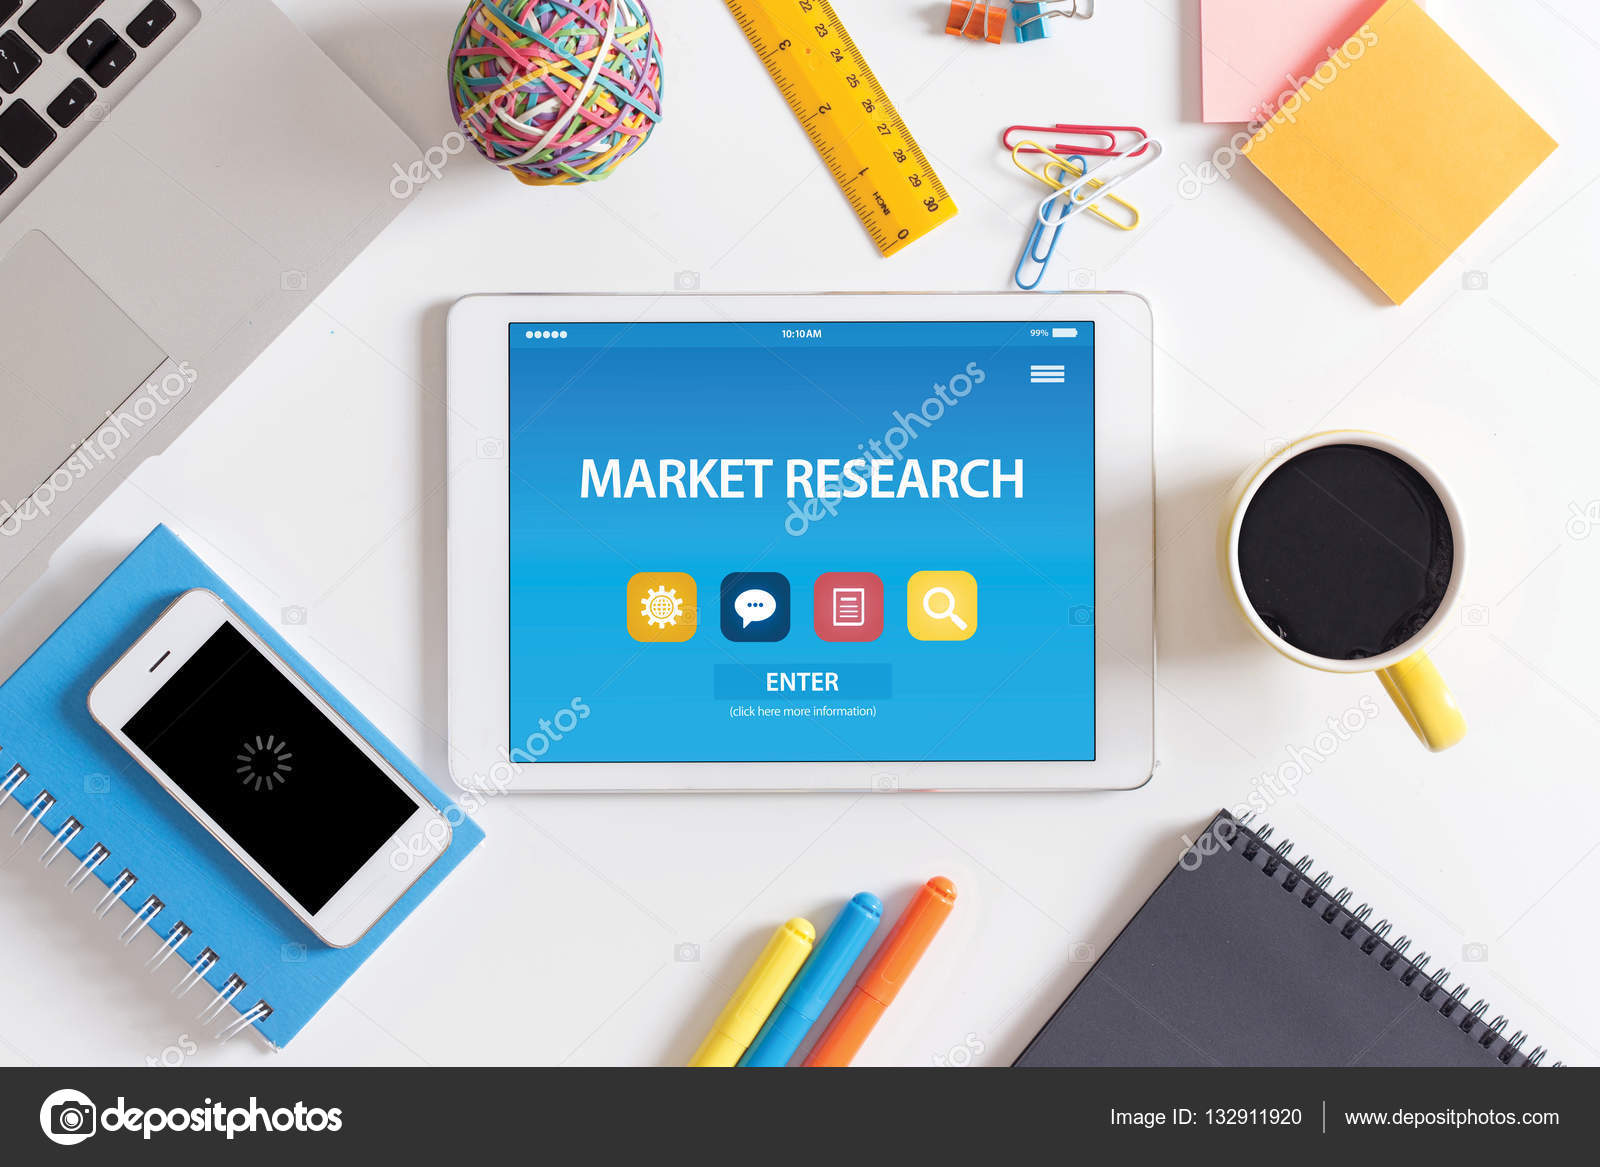 MARKET RESEARCH CONCEPT — Stock Photo © Garagestock  Depositphotos  Stock Photo Market Research Concept Stock Photo Market Research Concept